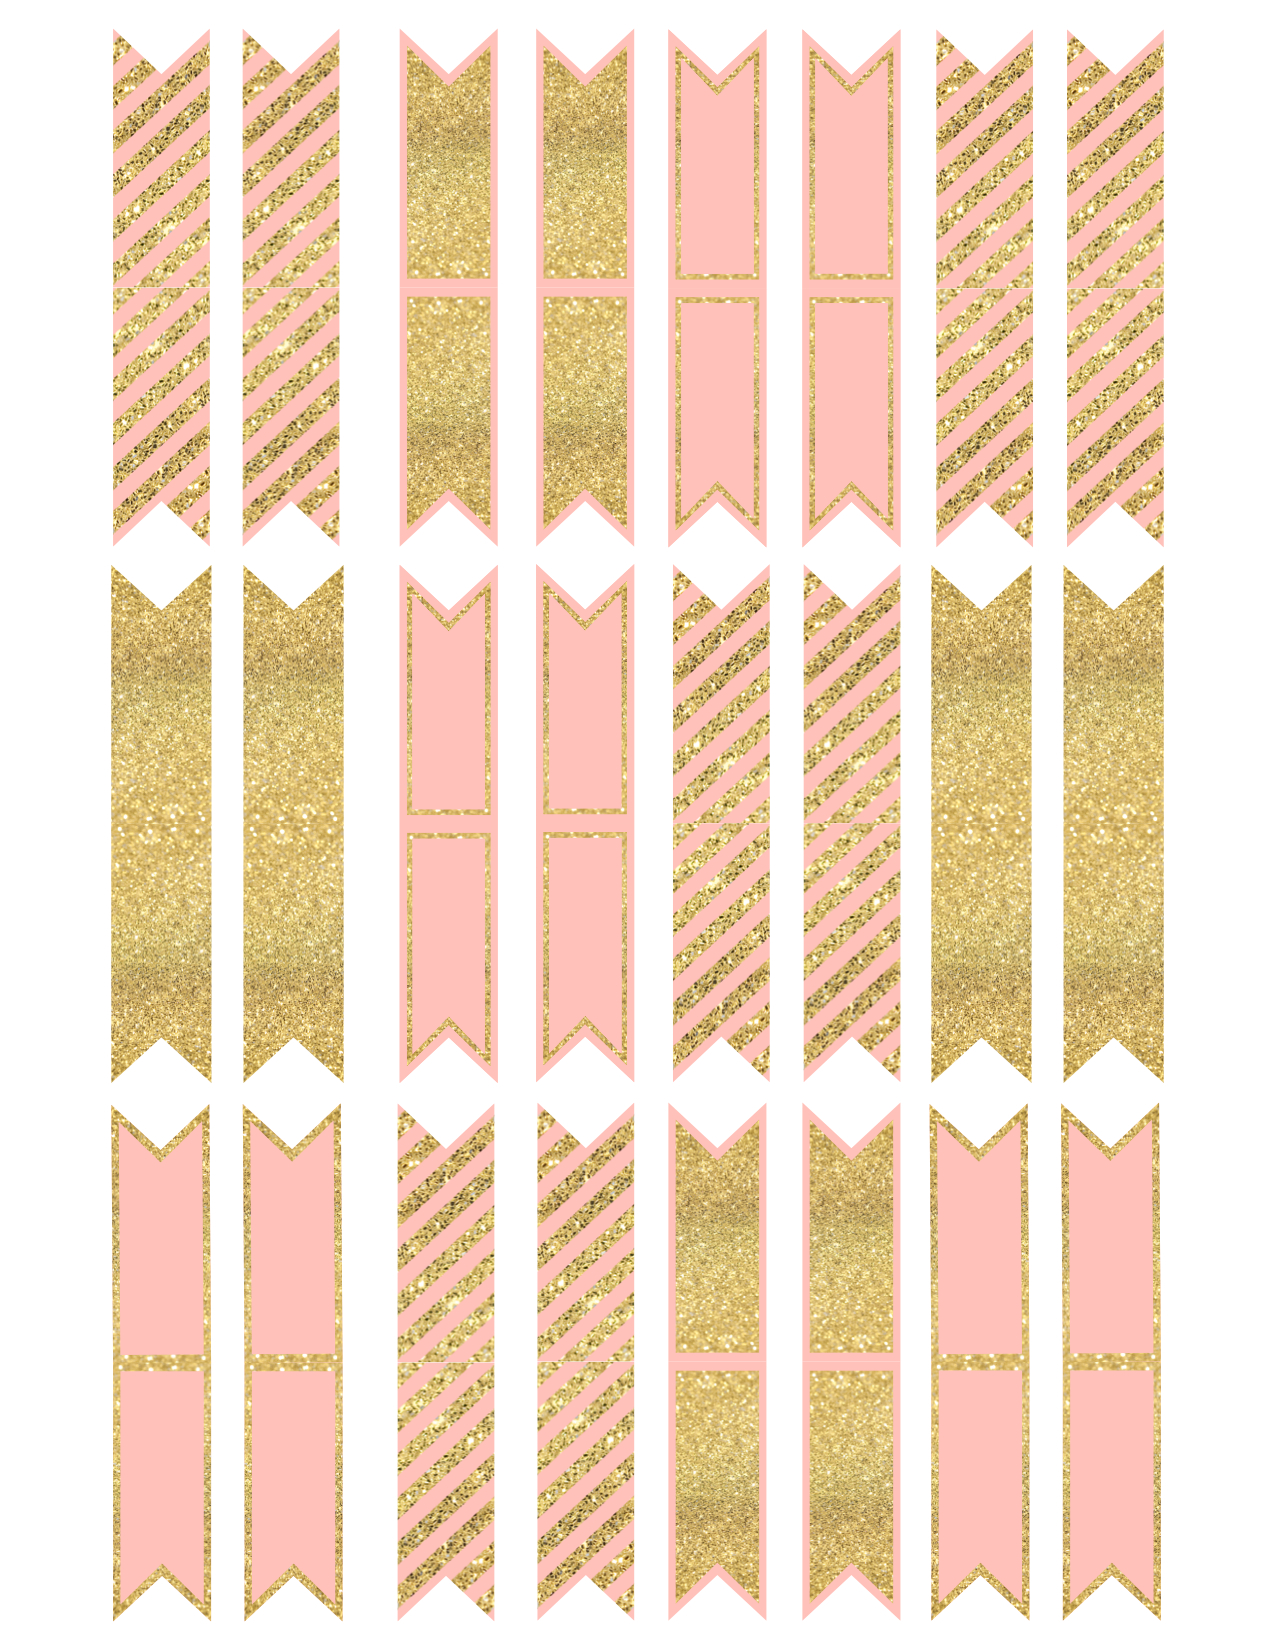 Pink and Gold Cupcake Topper Flags or Bunting | Paper ...